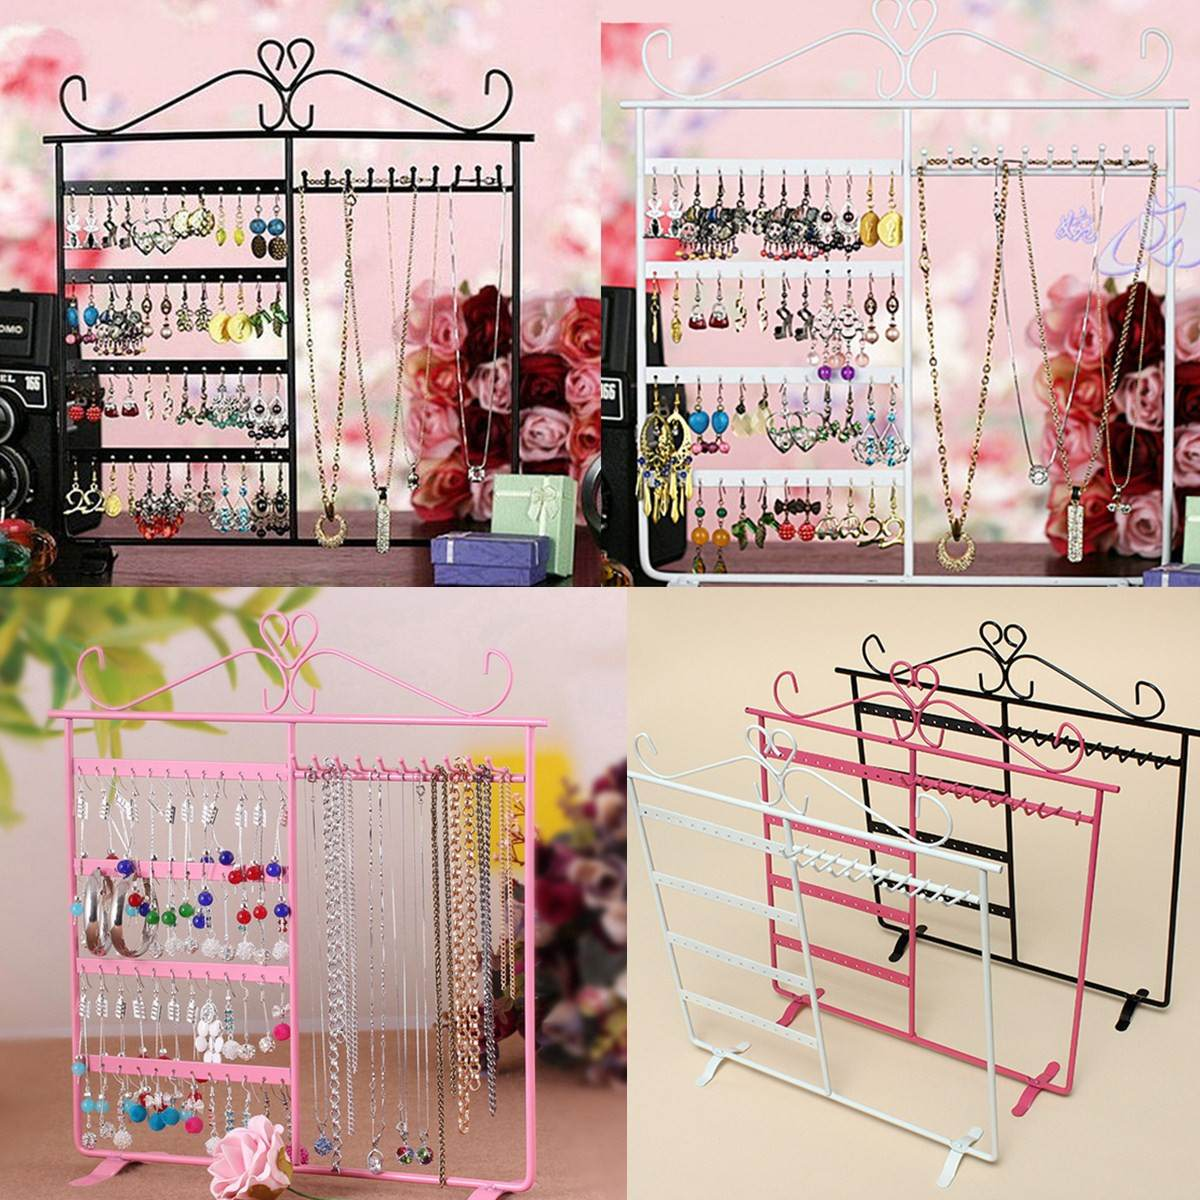 48 Holes Jewelry Handing Rack Earring Necklace Chain Showcase Display Stand Metal Iron Stand Holder Fashion Jewelry Hanger